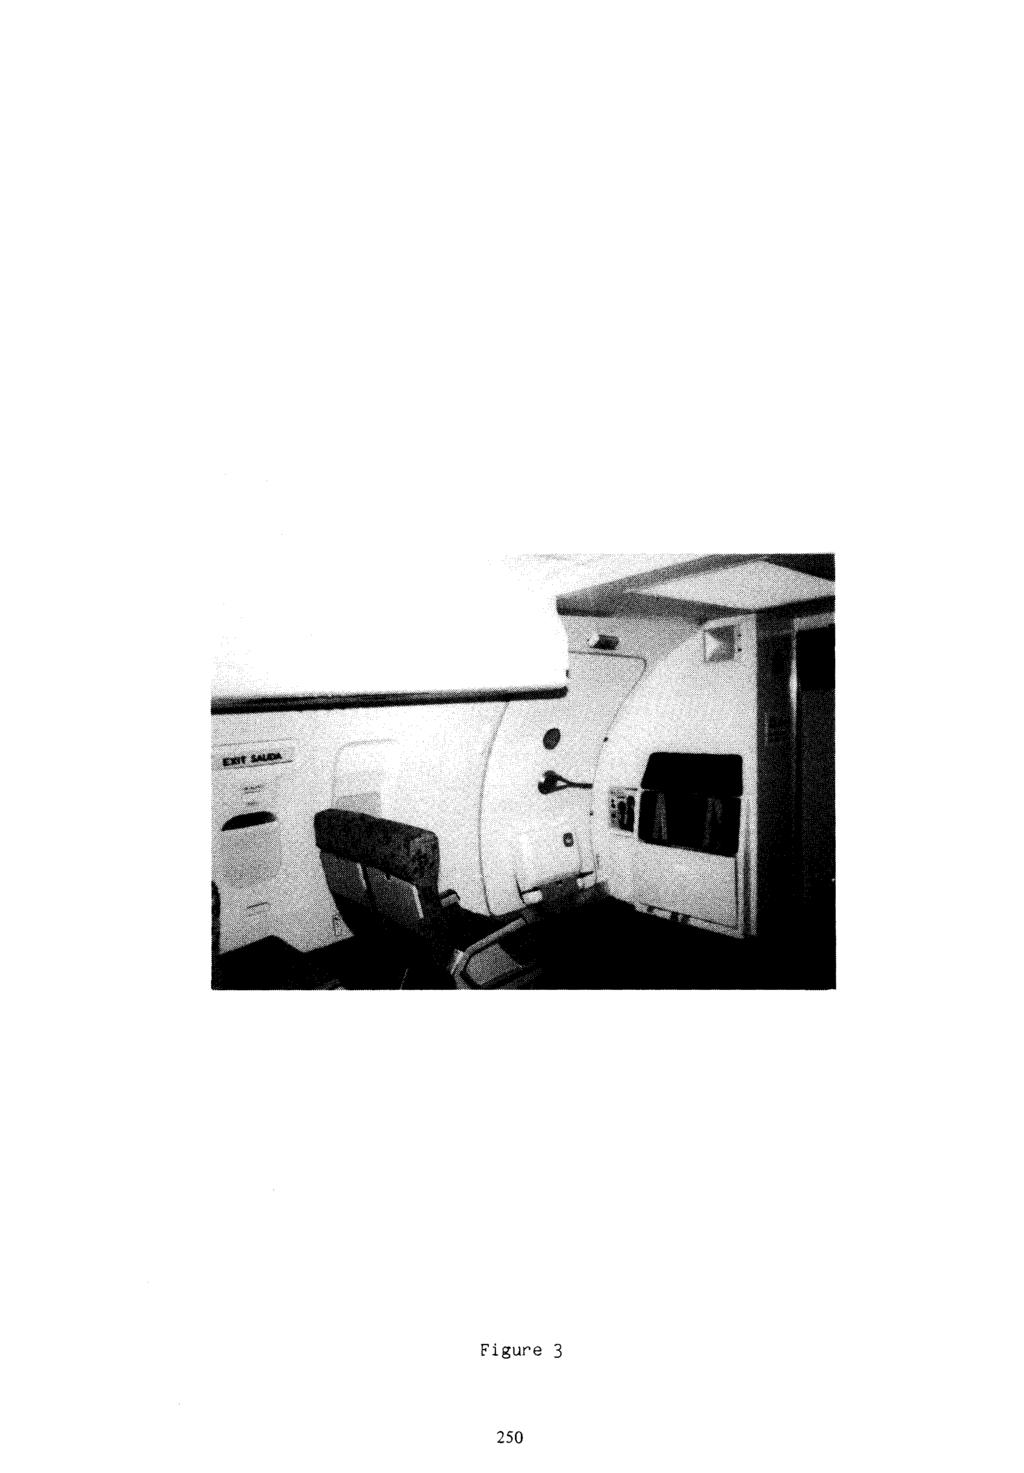 Proceedings Of The European Cabin Safety Conference Pdf Network Solutions Nottinghamleicesterderby All About Wiring Diagram Figure 3